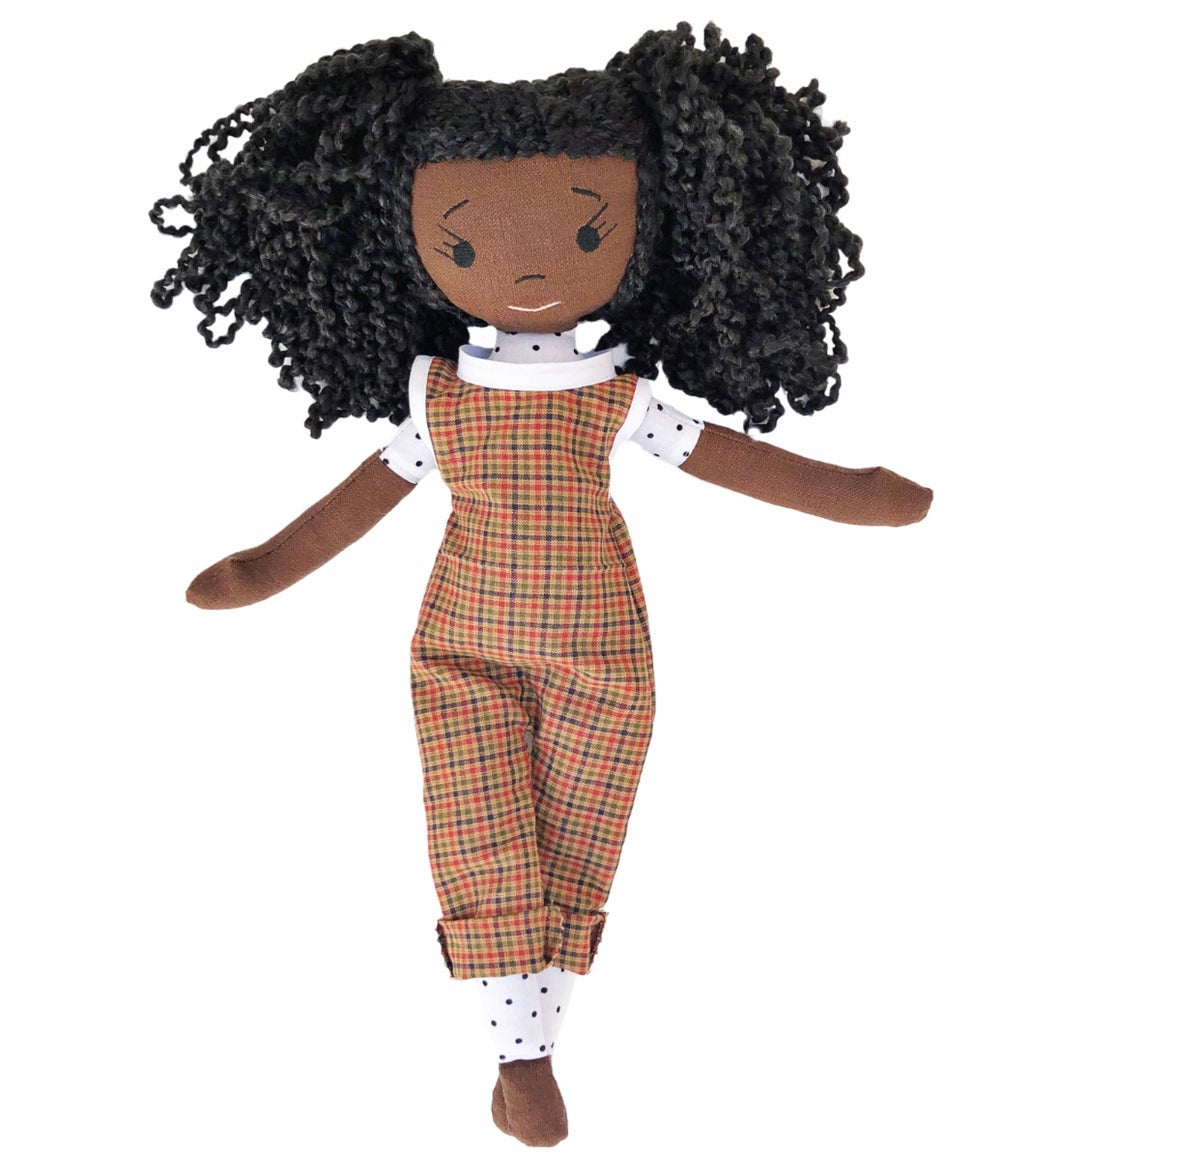 Zoe Handmade Linen Doll (SHIP DATE: ON OR BEFORE MARCH 15TH)